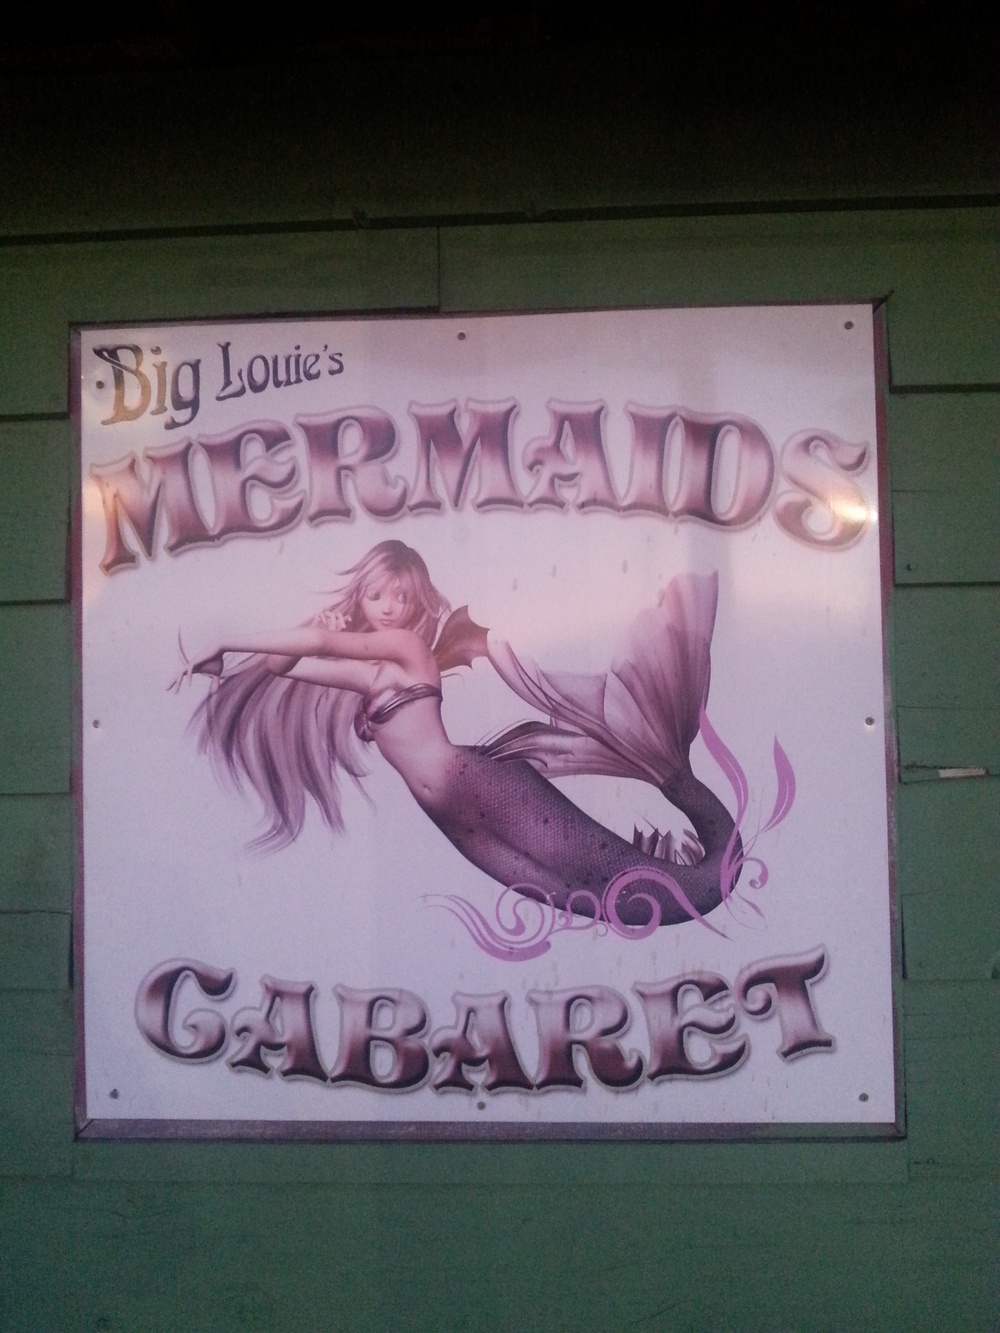 I'm assuming with real mermaids?